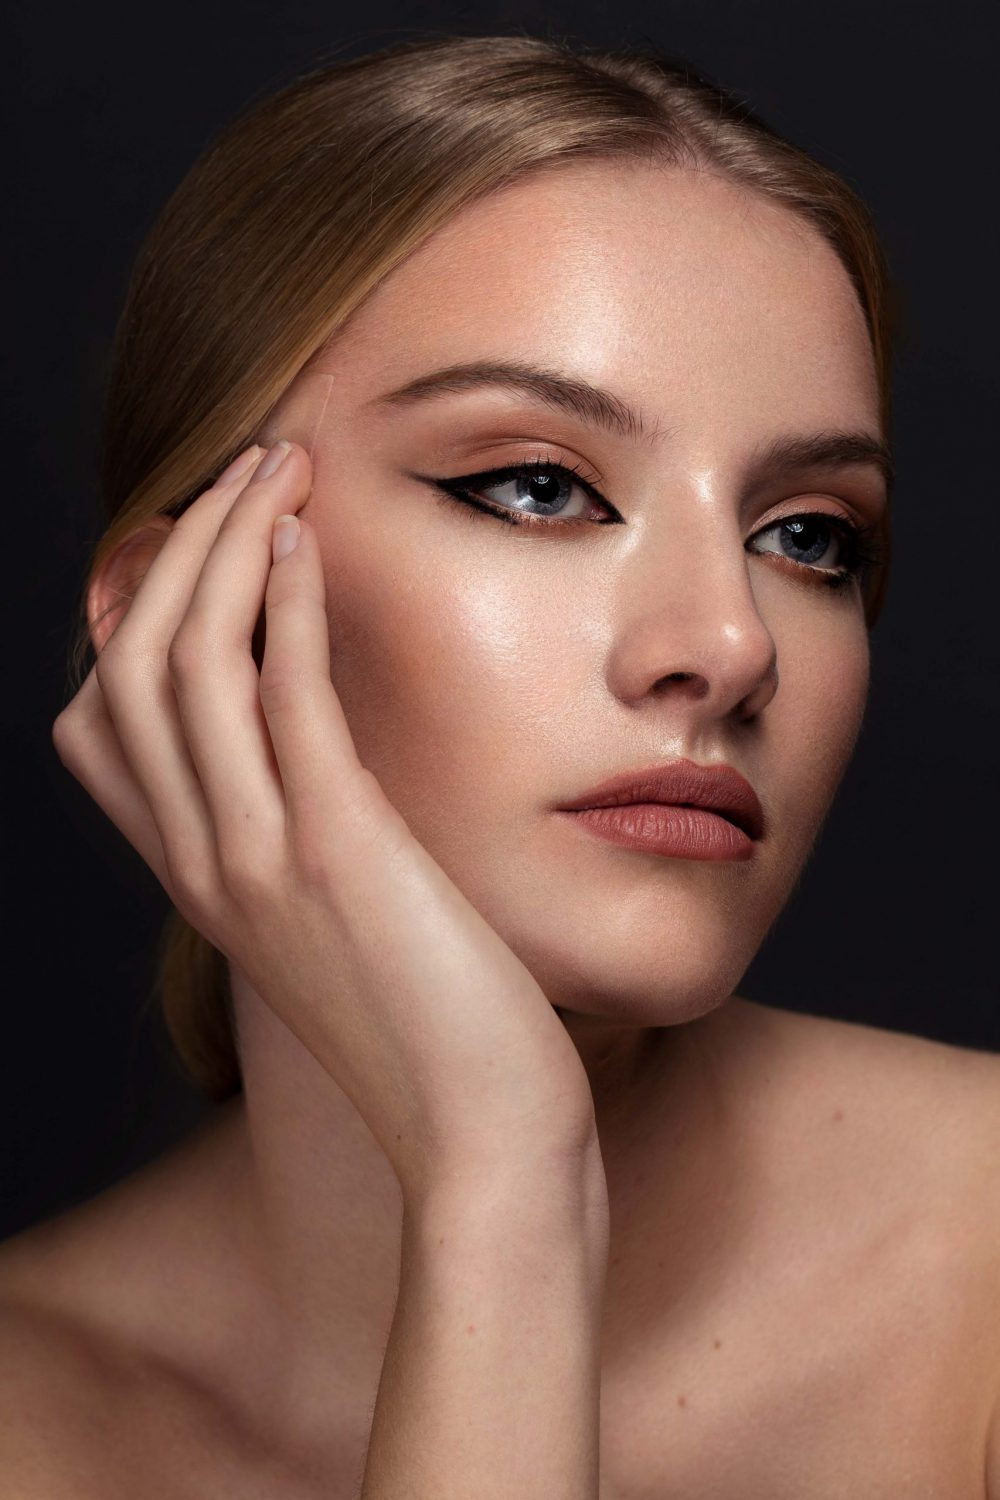 makeup beauty editorial karin van berkel